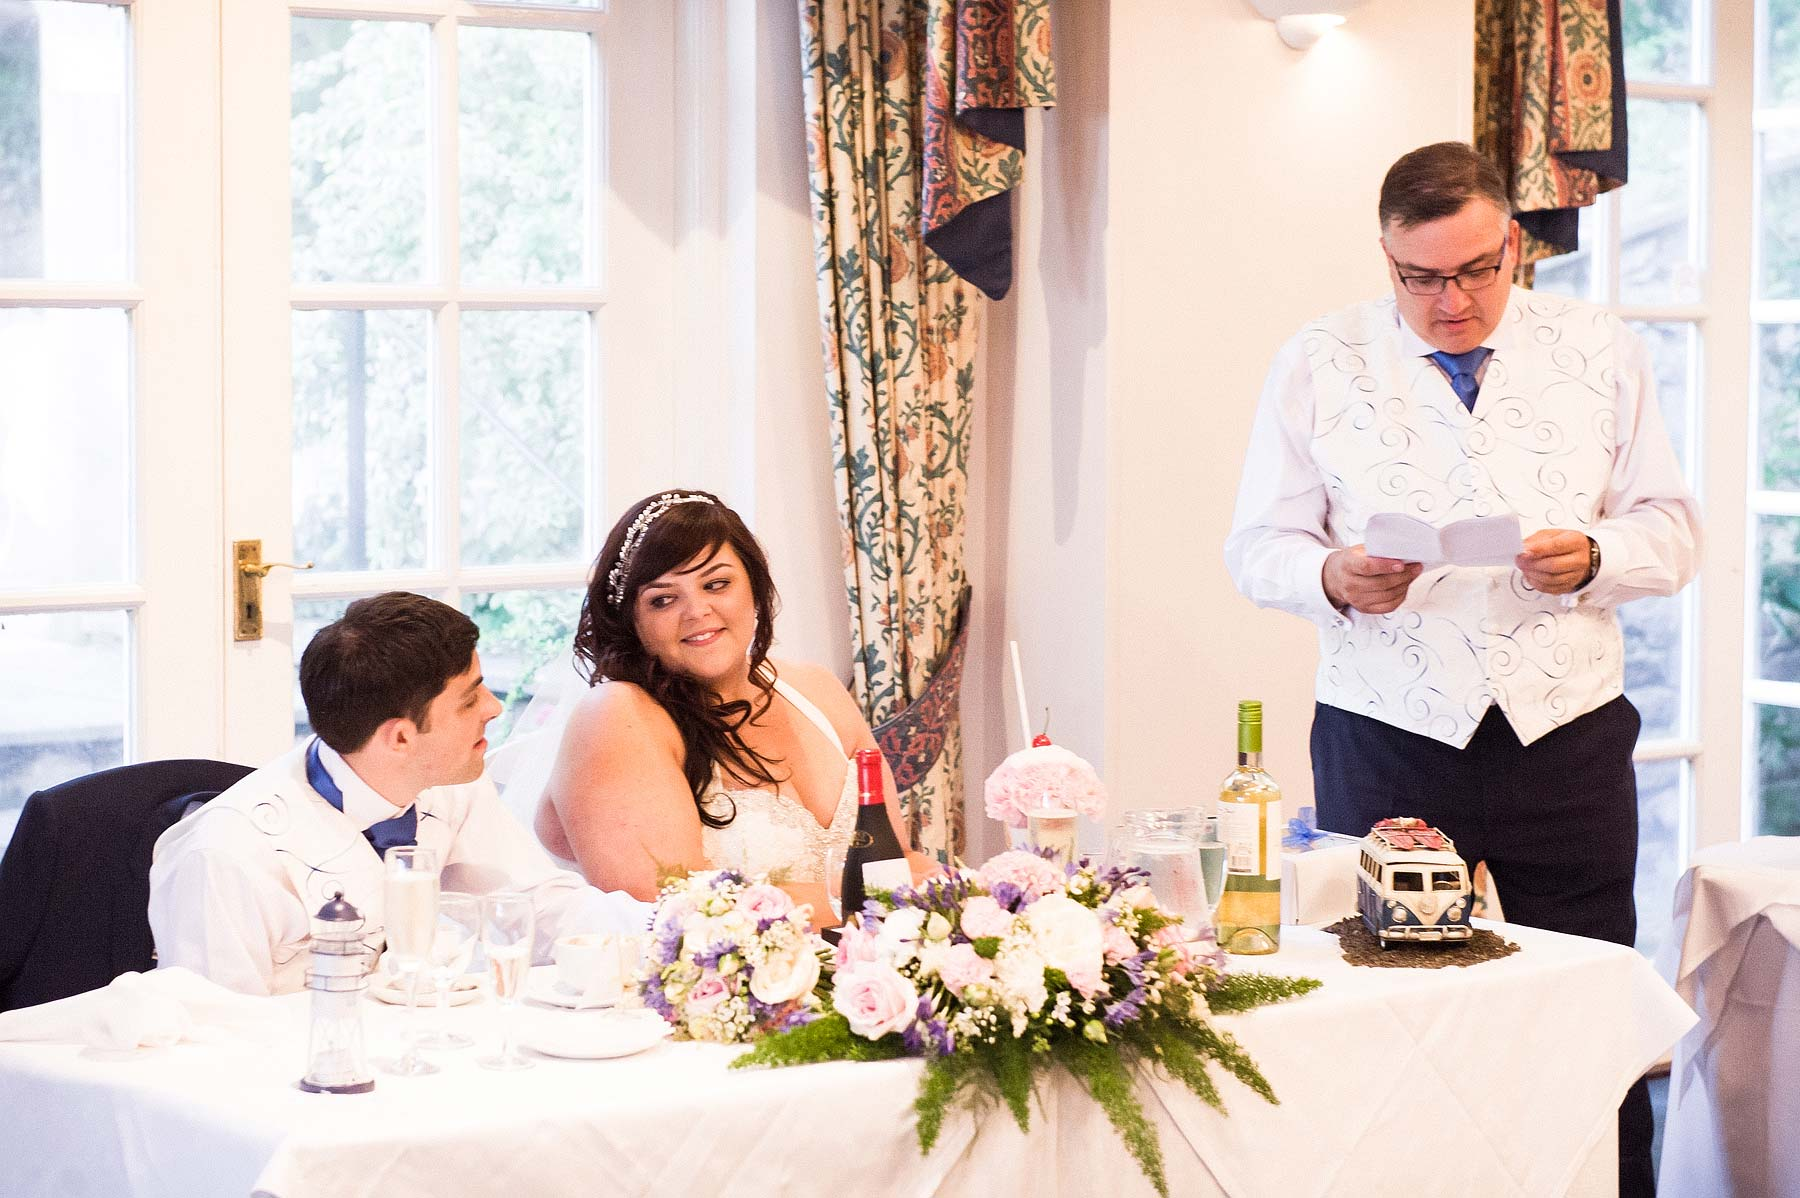 berry-head-hotel-brixham-wedding-photographer-090